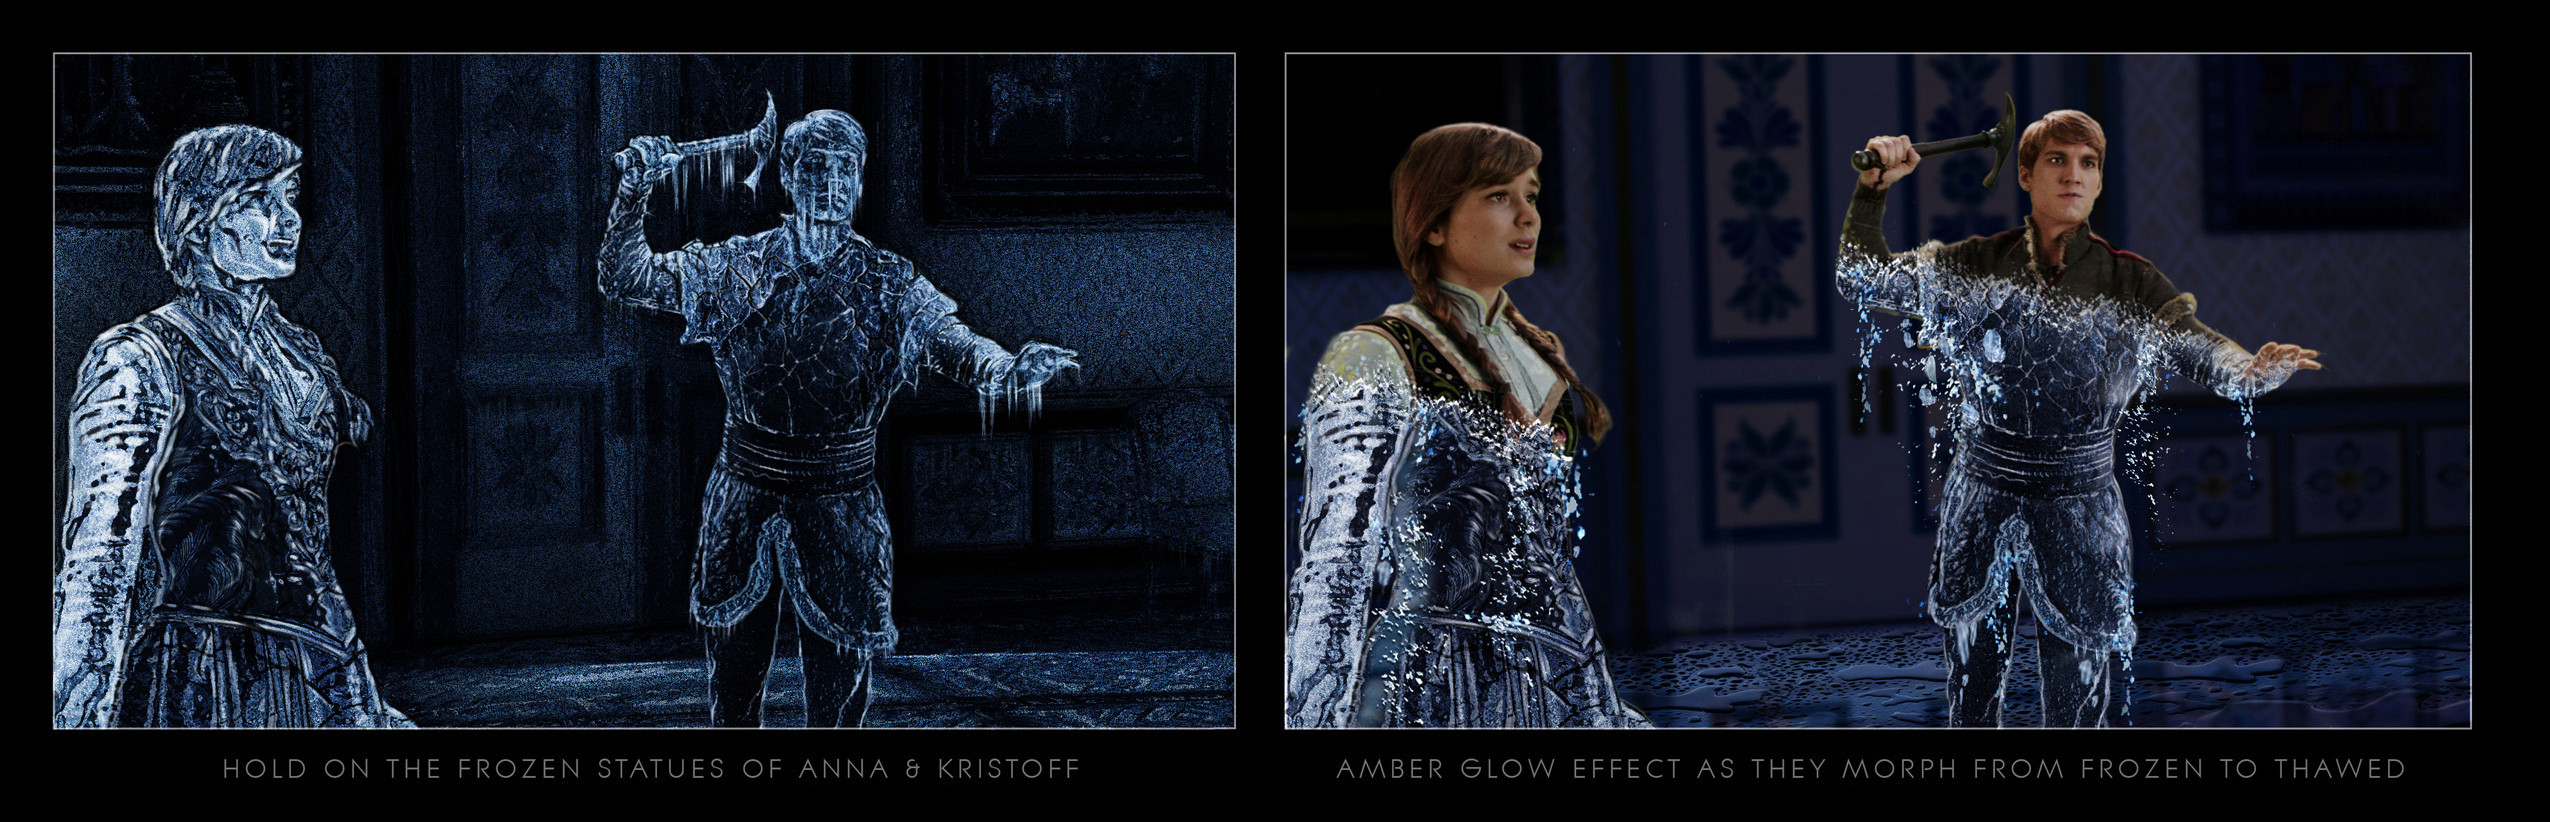 Anna Freezing Effect - Once Upon  a Time Season 5